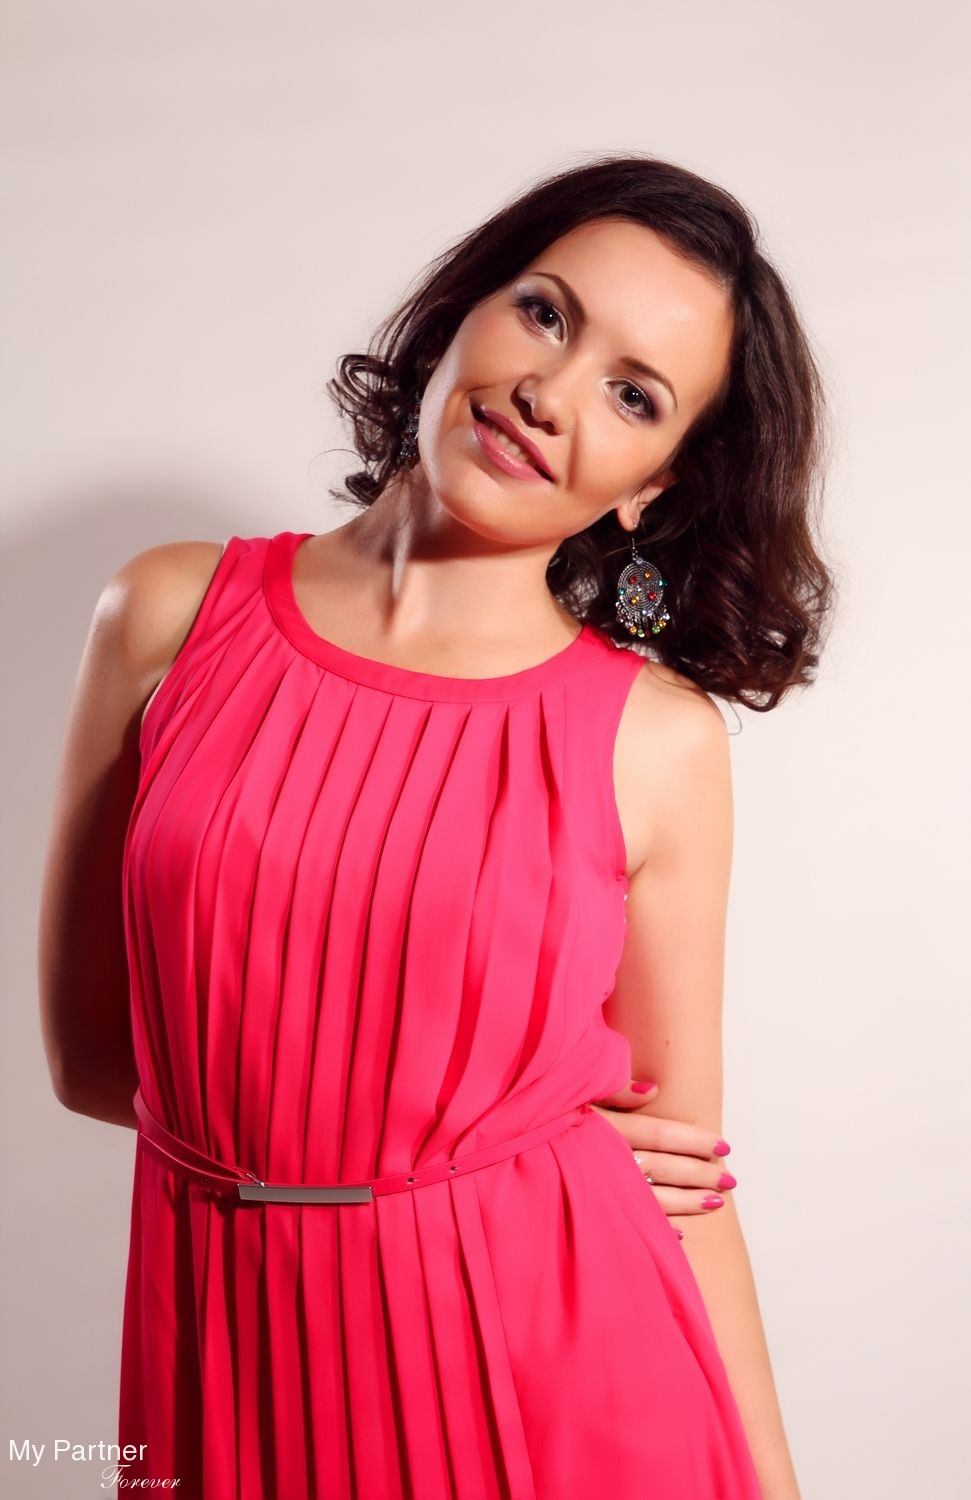 International Dating Service to Meet Ekaterina from Novosibirsk, Russia